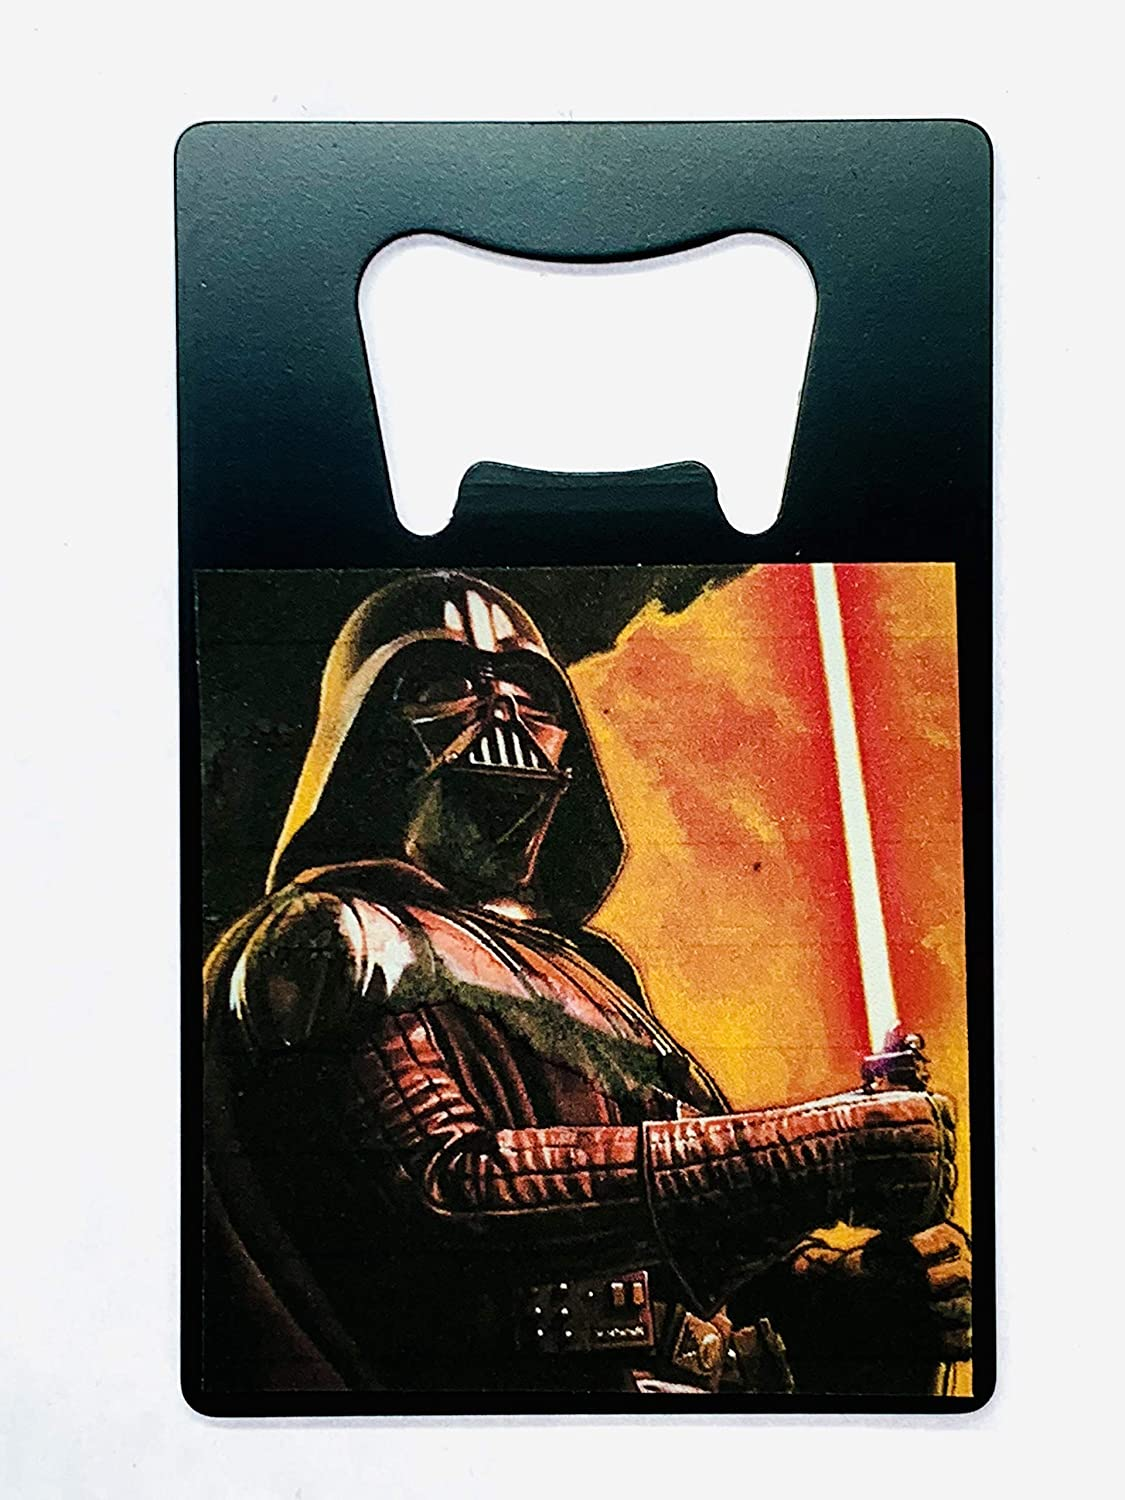 Directly managed store Star Wars Bottle Opener Magnet- from Recycled free Manga Handmade